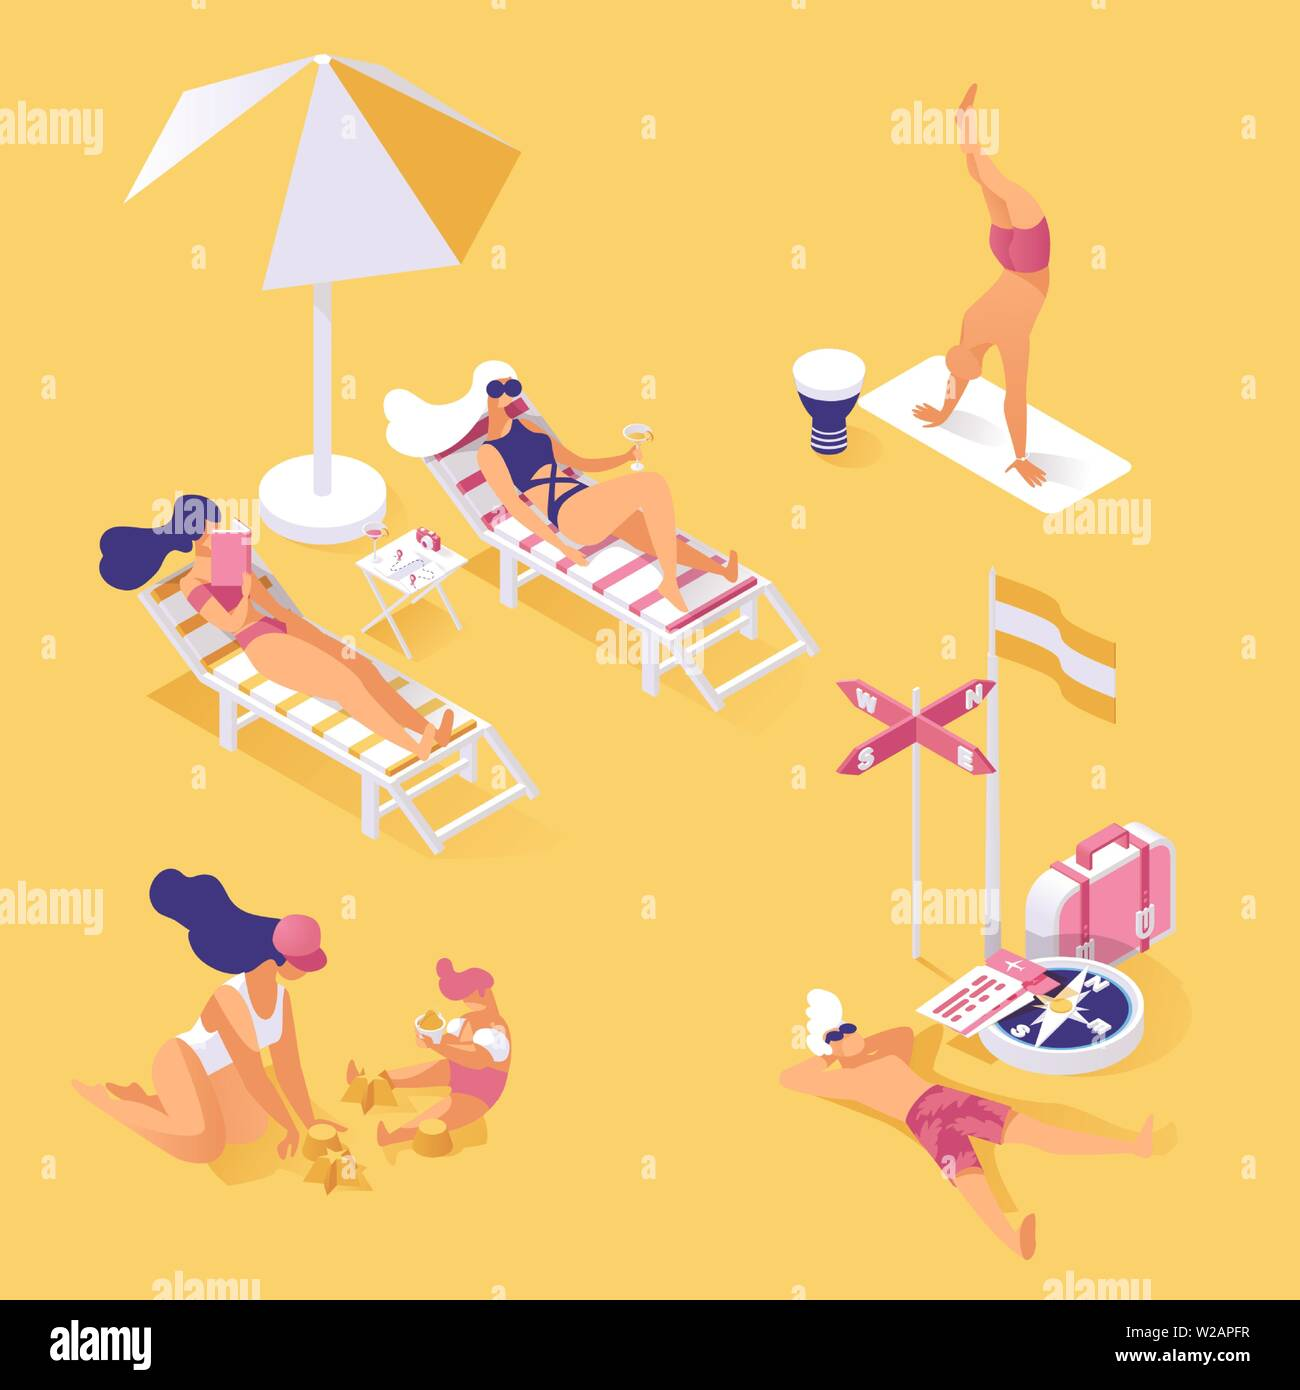 Summertime holiday on seashore isometric illustration. People enjoying summer vacation, relaxing and resting on sandy beach 3d concept. Hot day activities, sunbathing and working out - Stock Vector